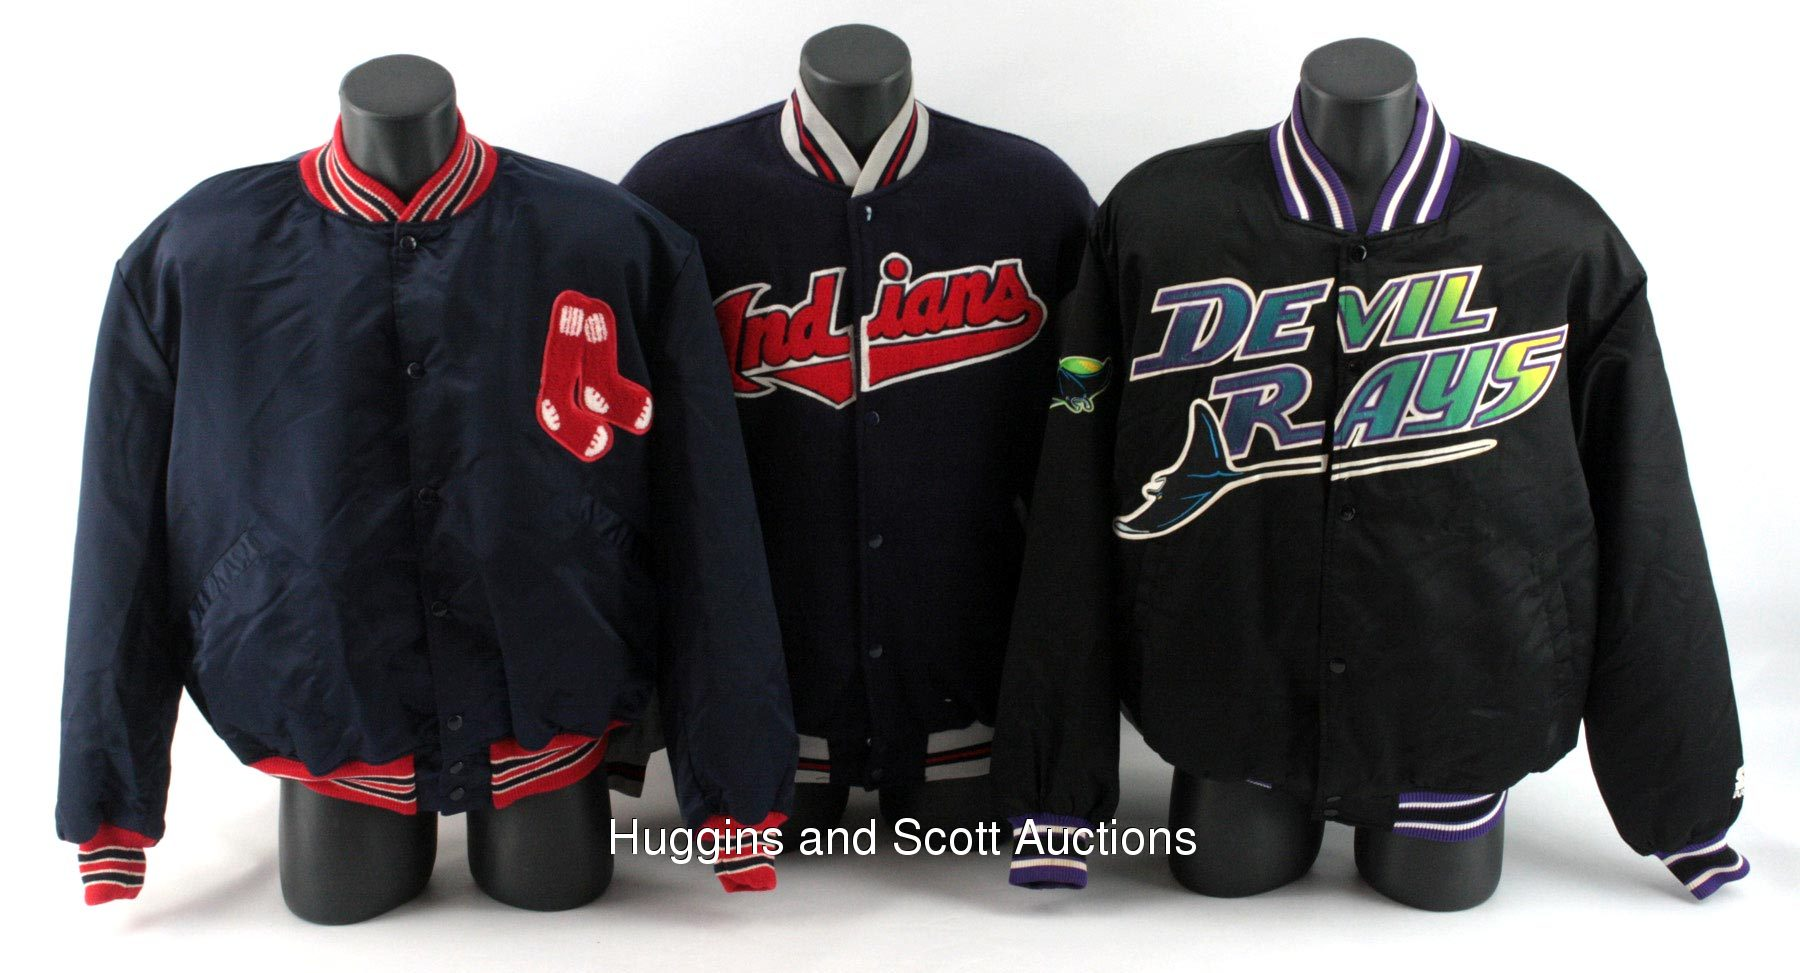 6) Major League Baseball Team-Issued Jackets With Early Devil Rays